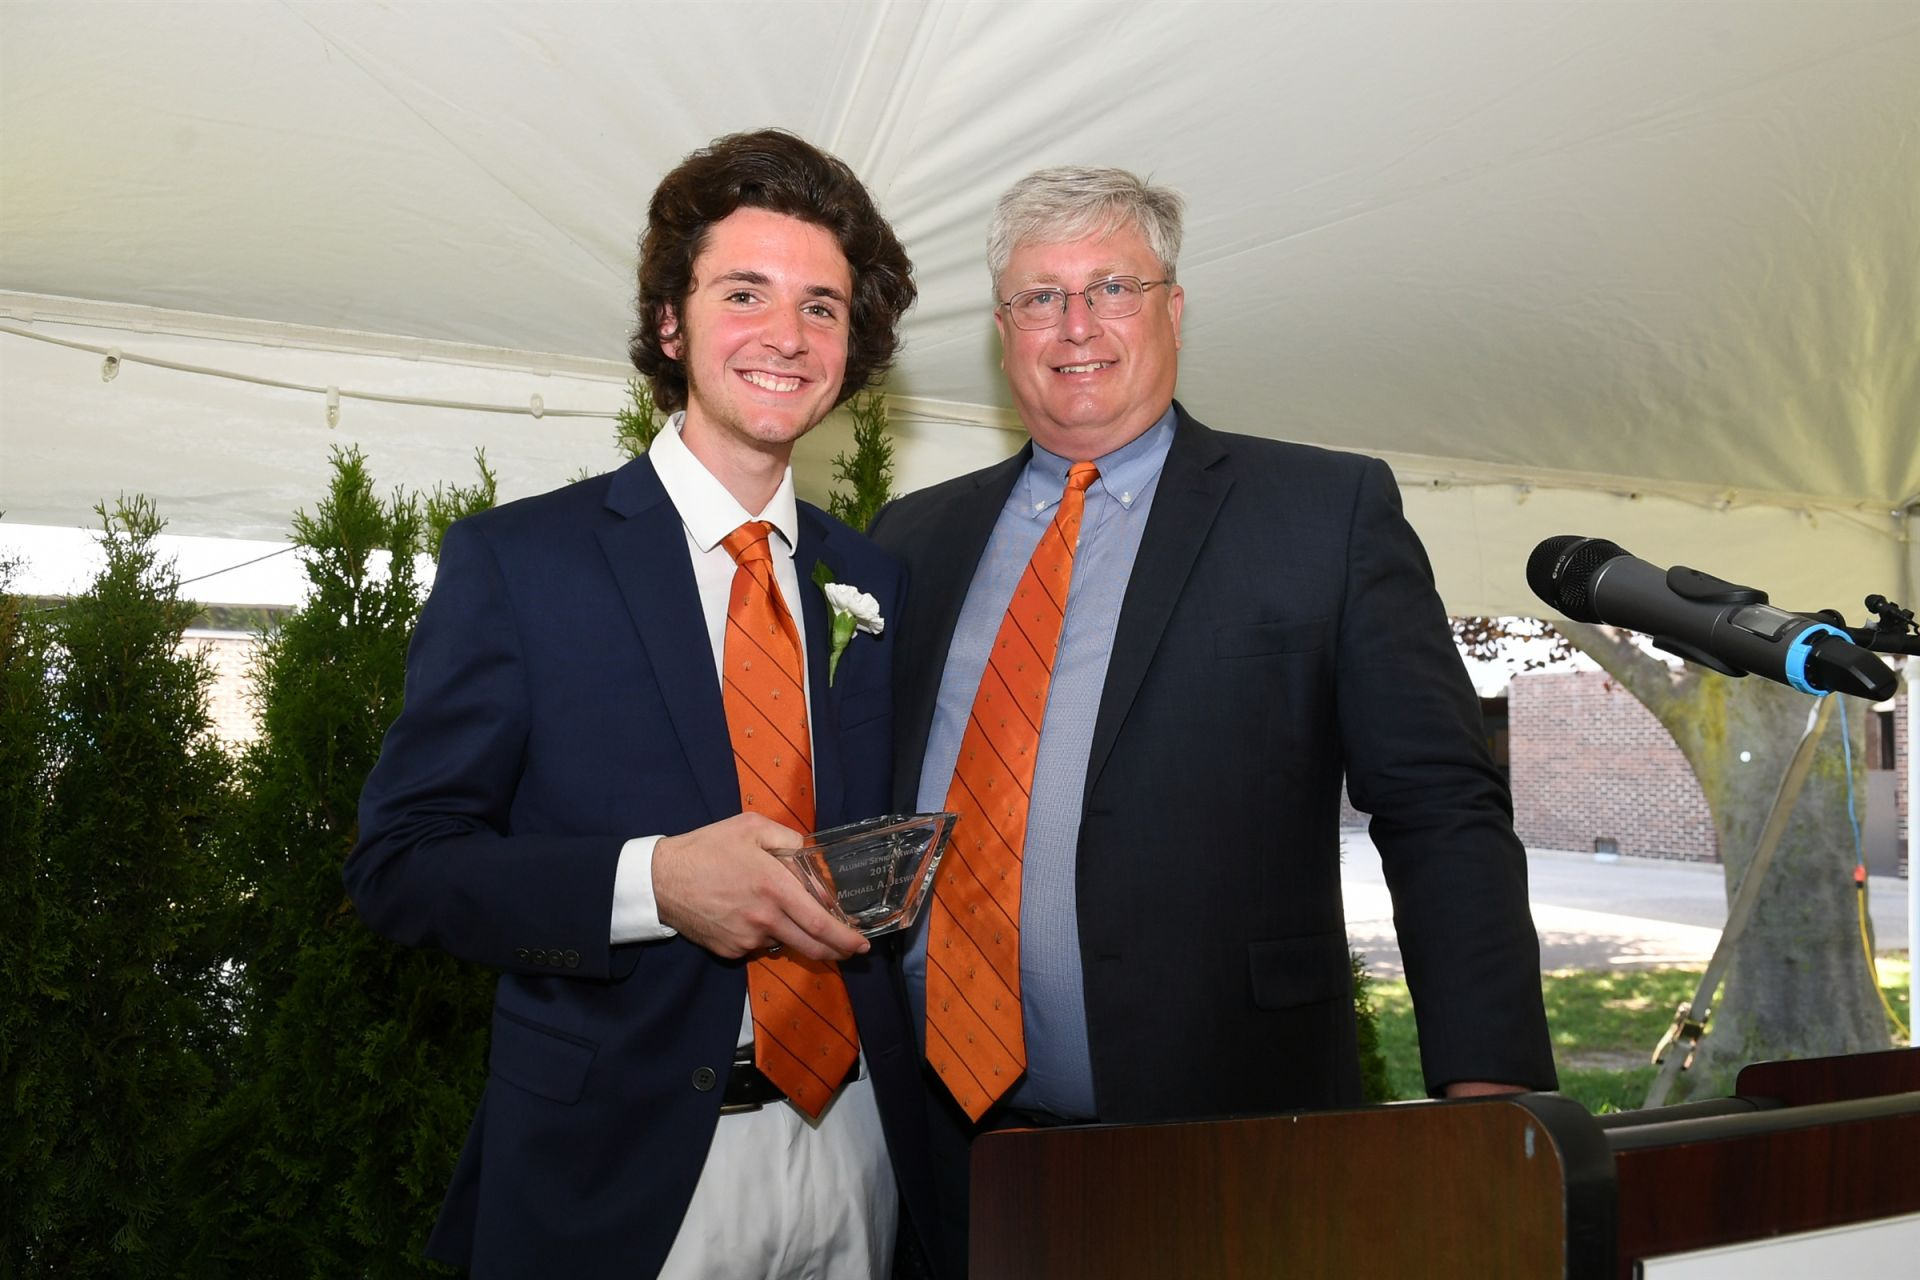 Michael Jeswald '17 receives the Alumni Senior Award on June 16, 2017 from Joe McMahon '83